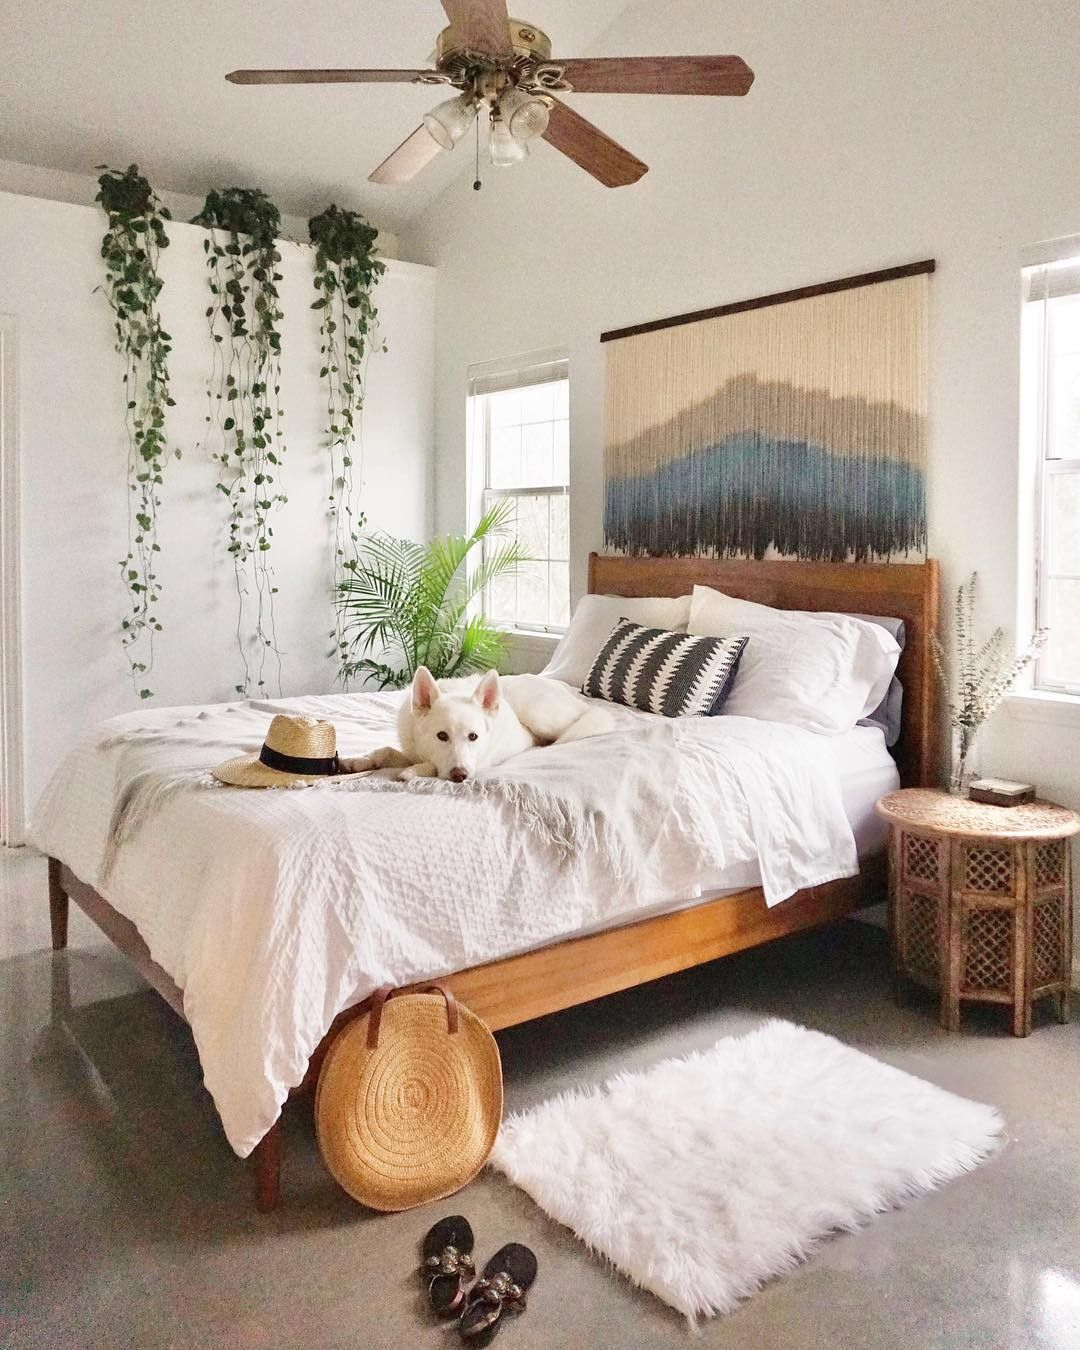 Modern Bohemian Bedroom Decor Ideas  Remodel bedroom, Bedroom